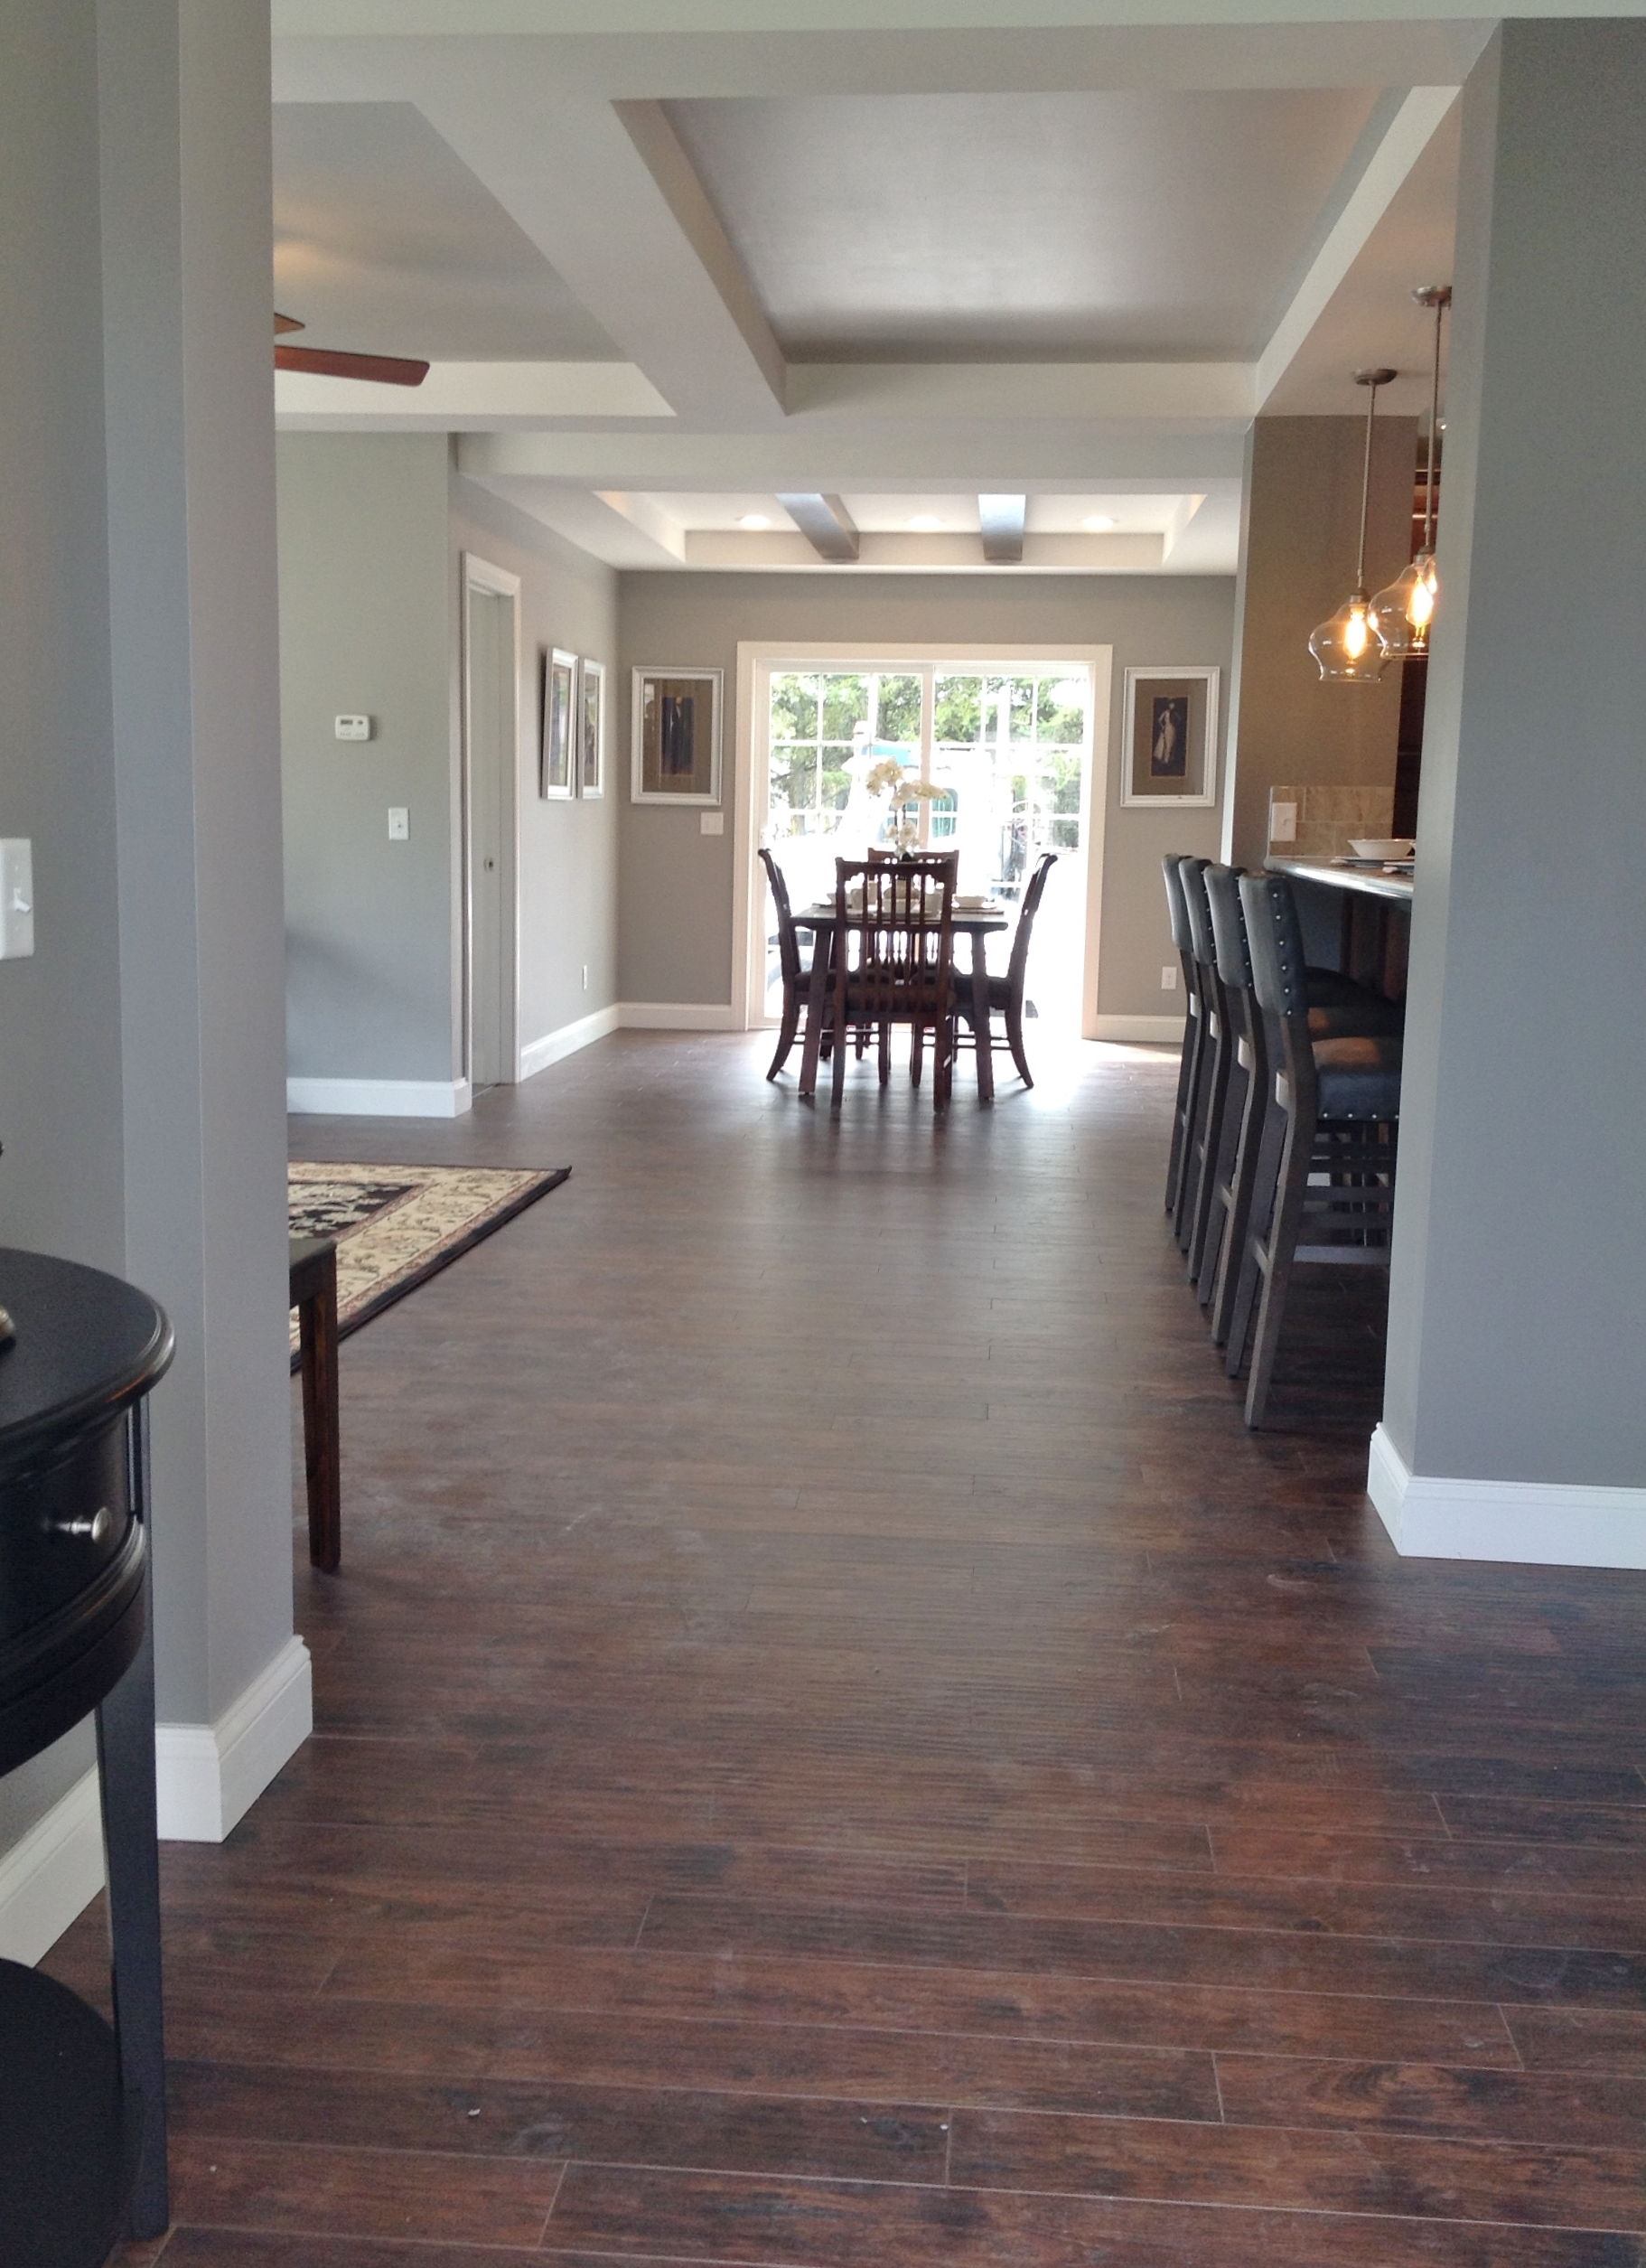 Displayed with laminate floor throughout the living area.